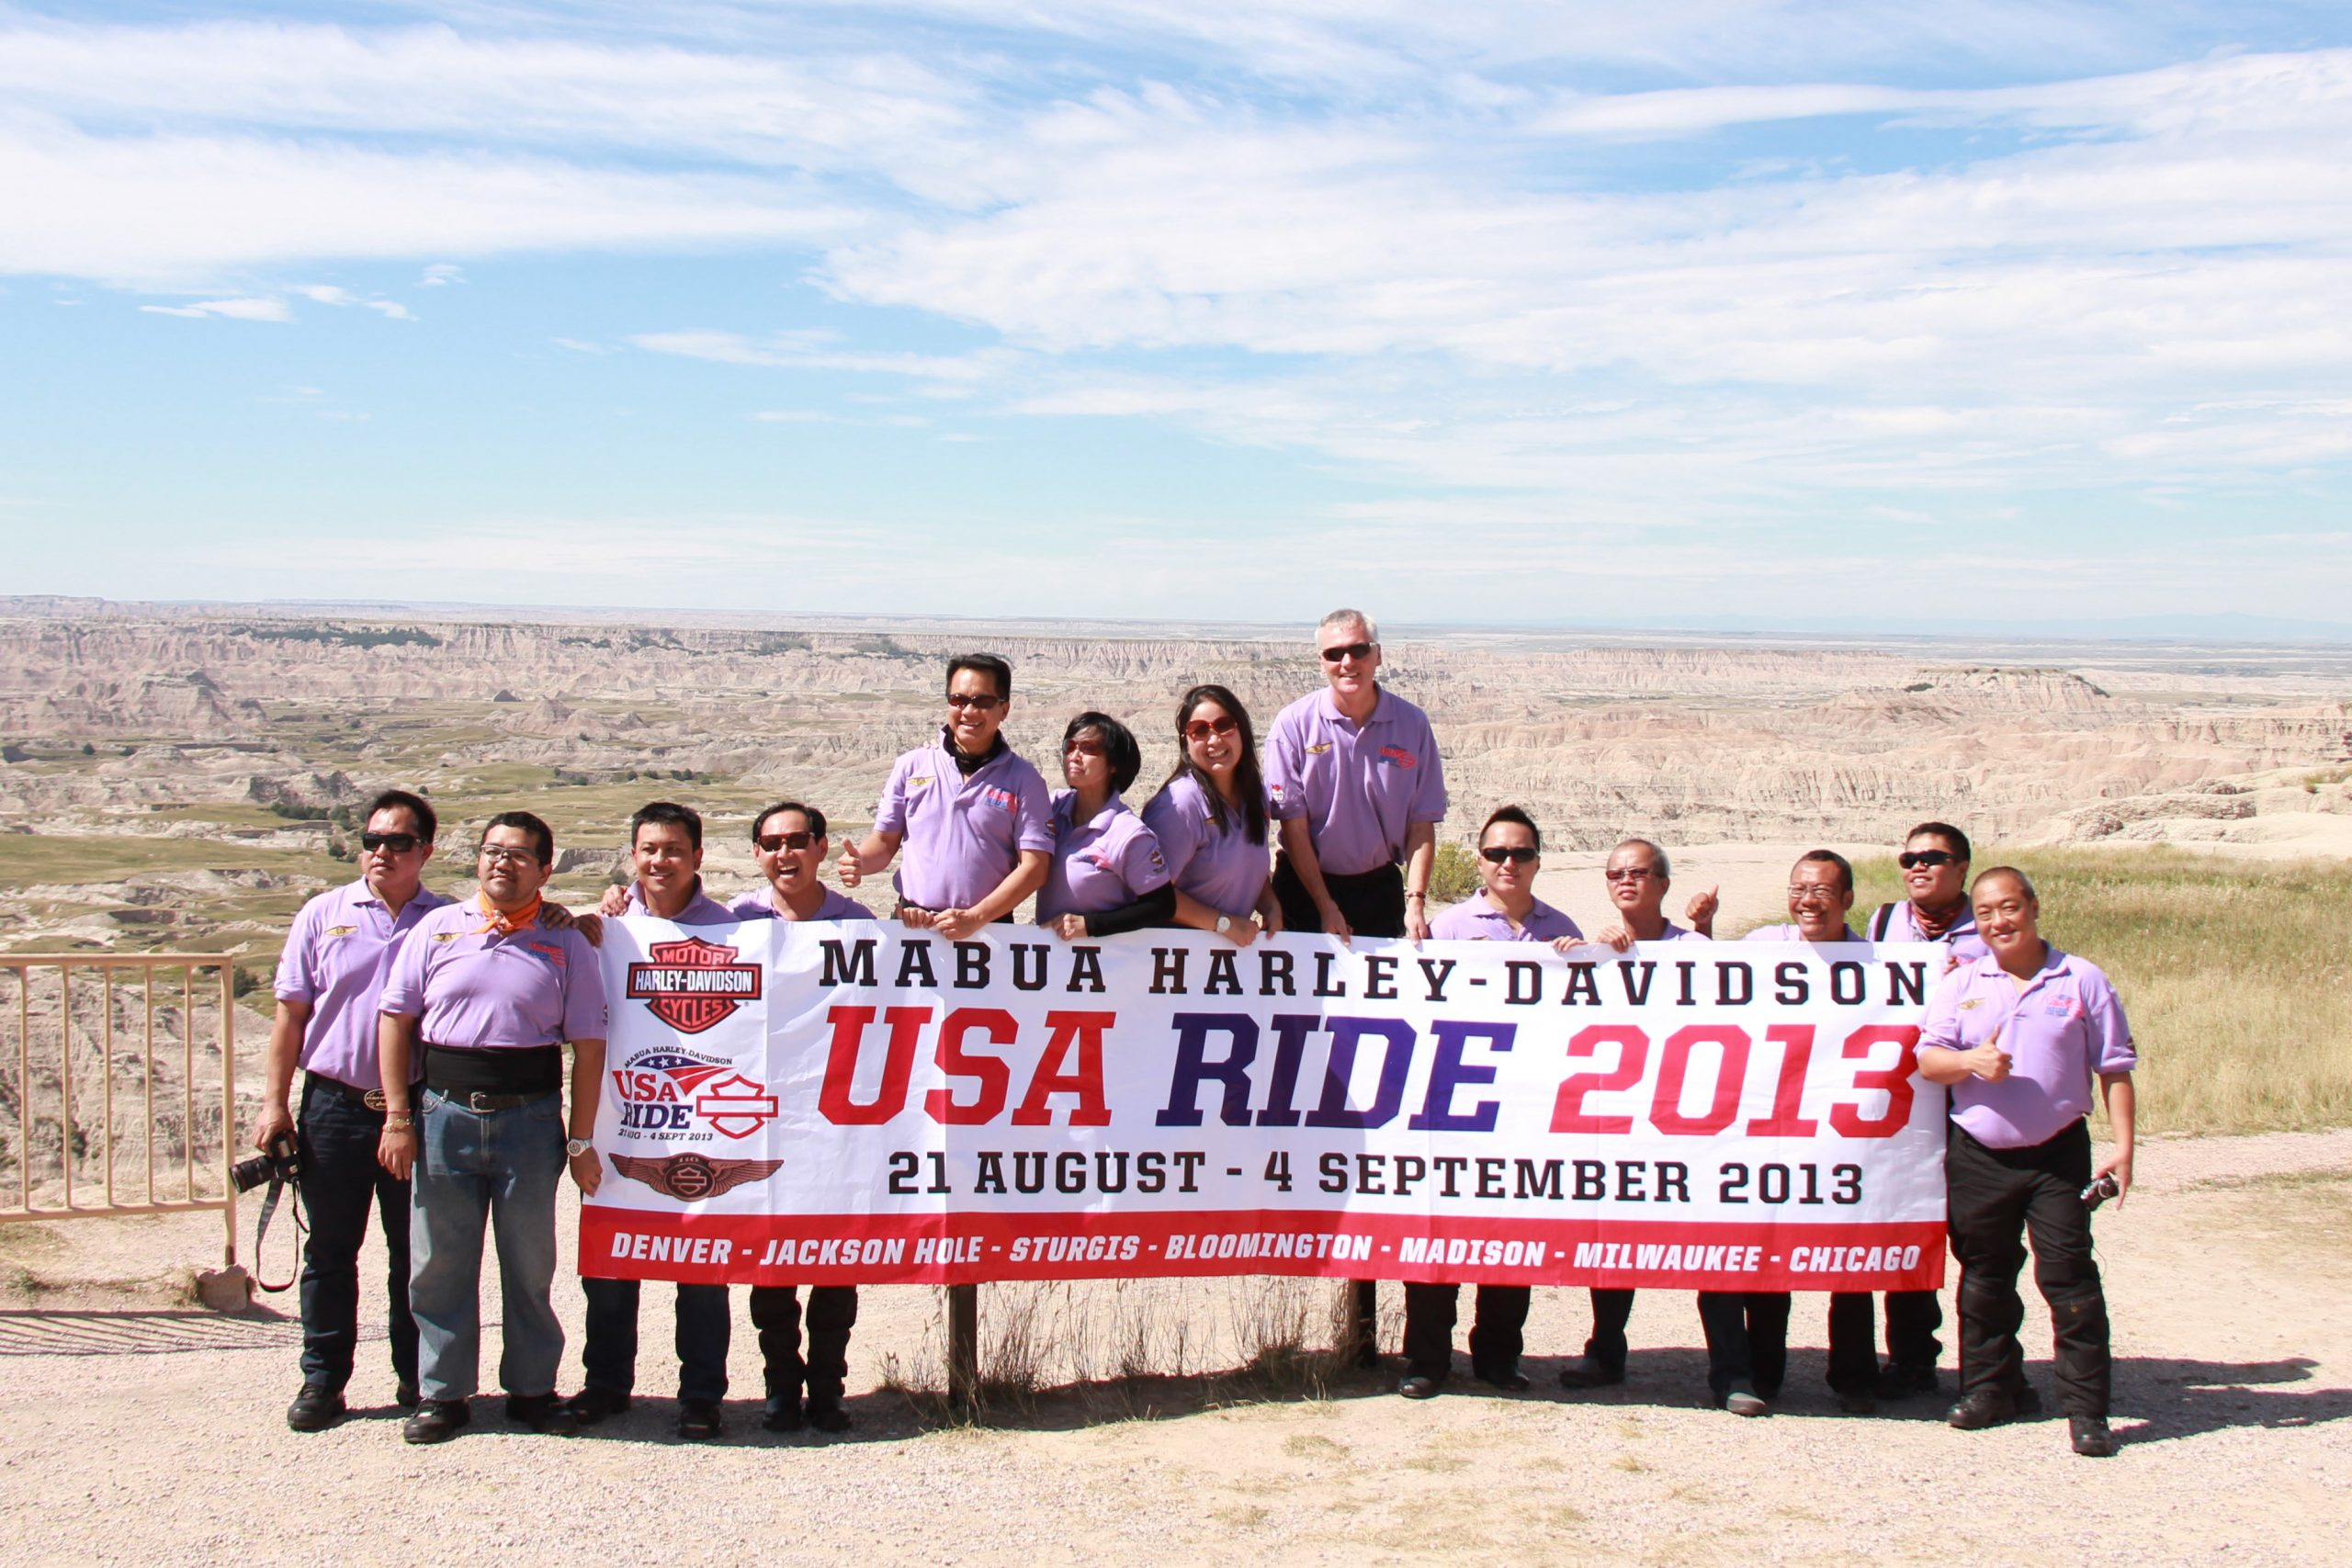 MOTORCYCLE TOUR PROVIDER